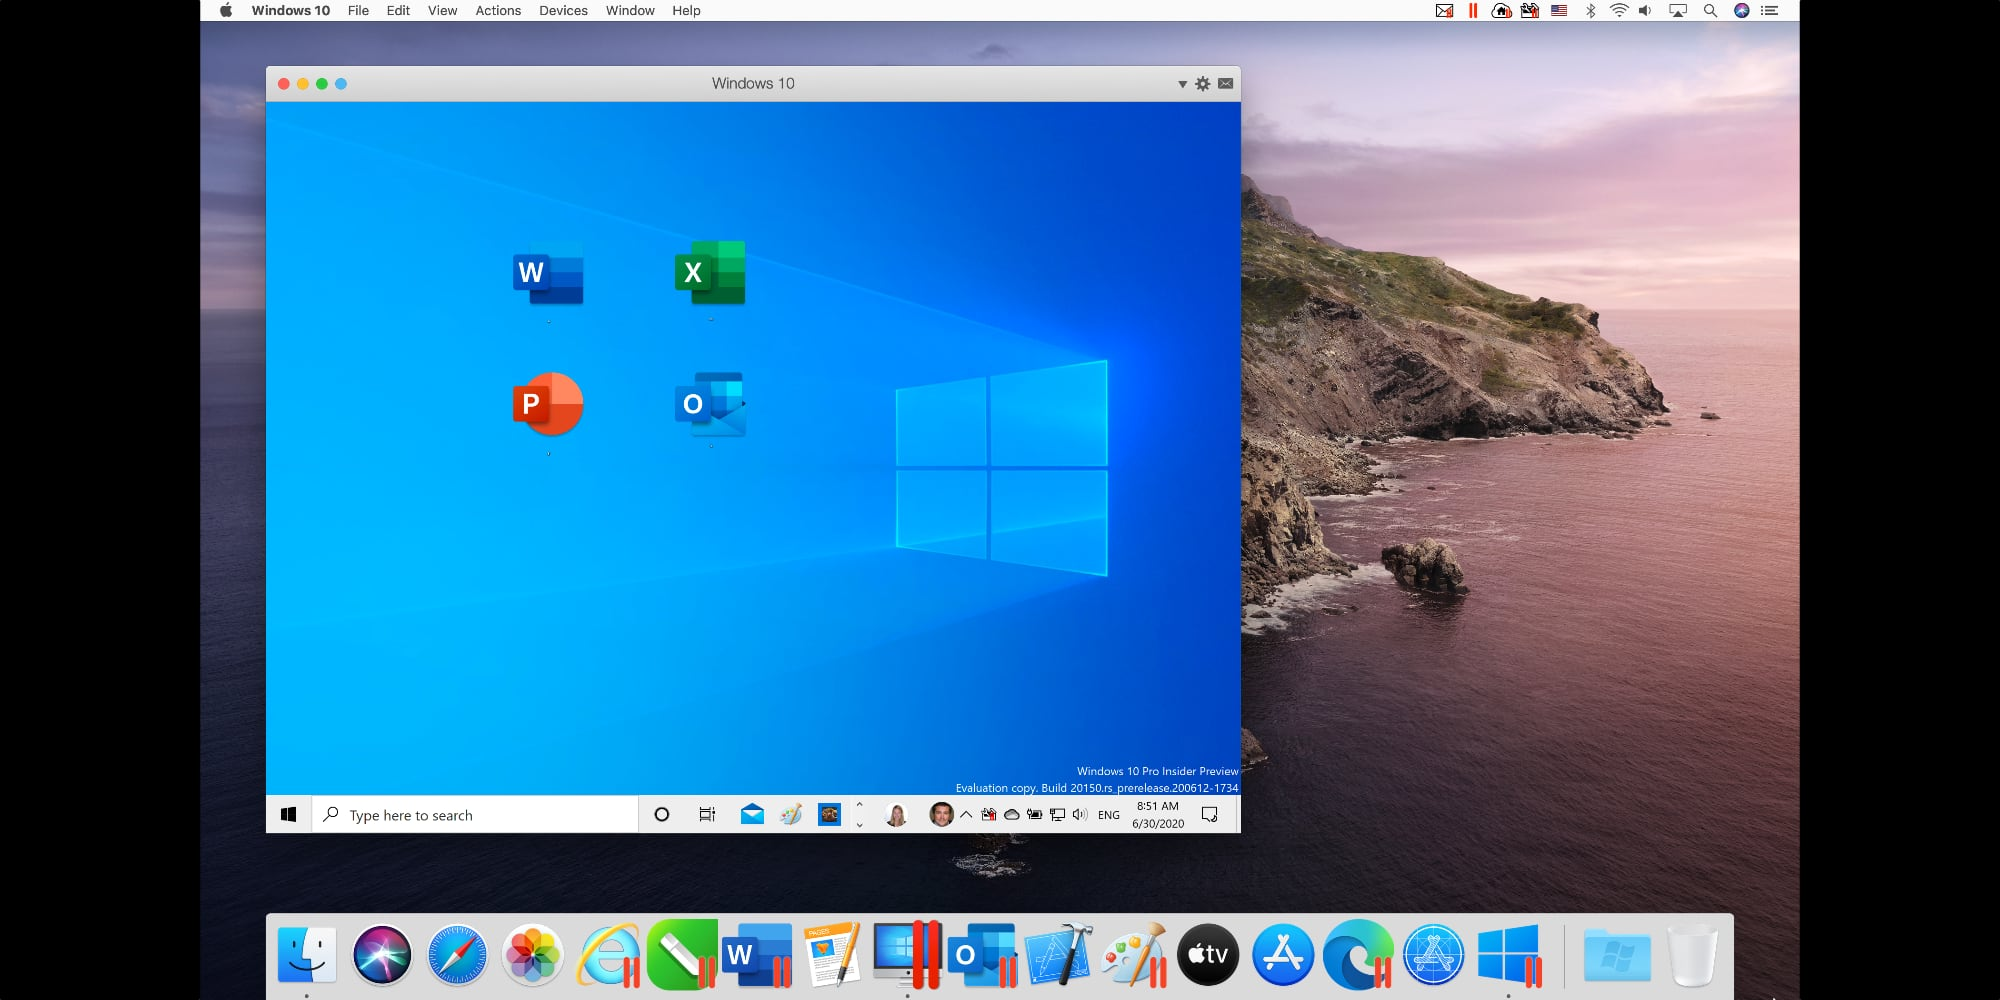 Parallels for mac windows 10 black screen after login